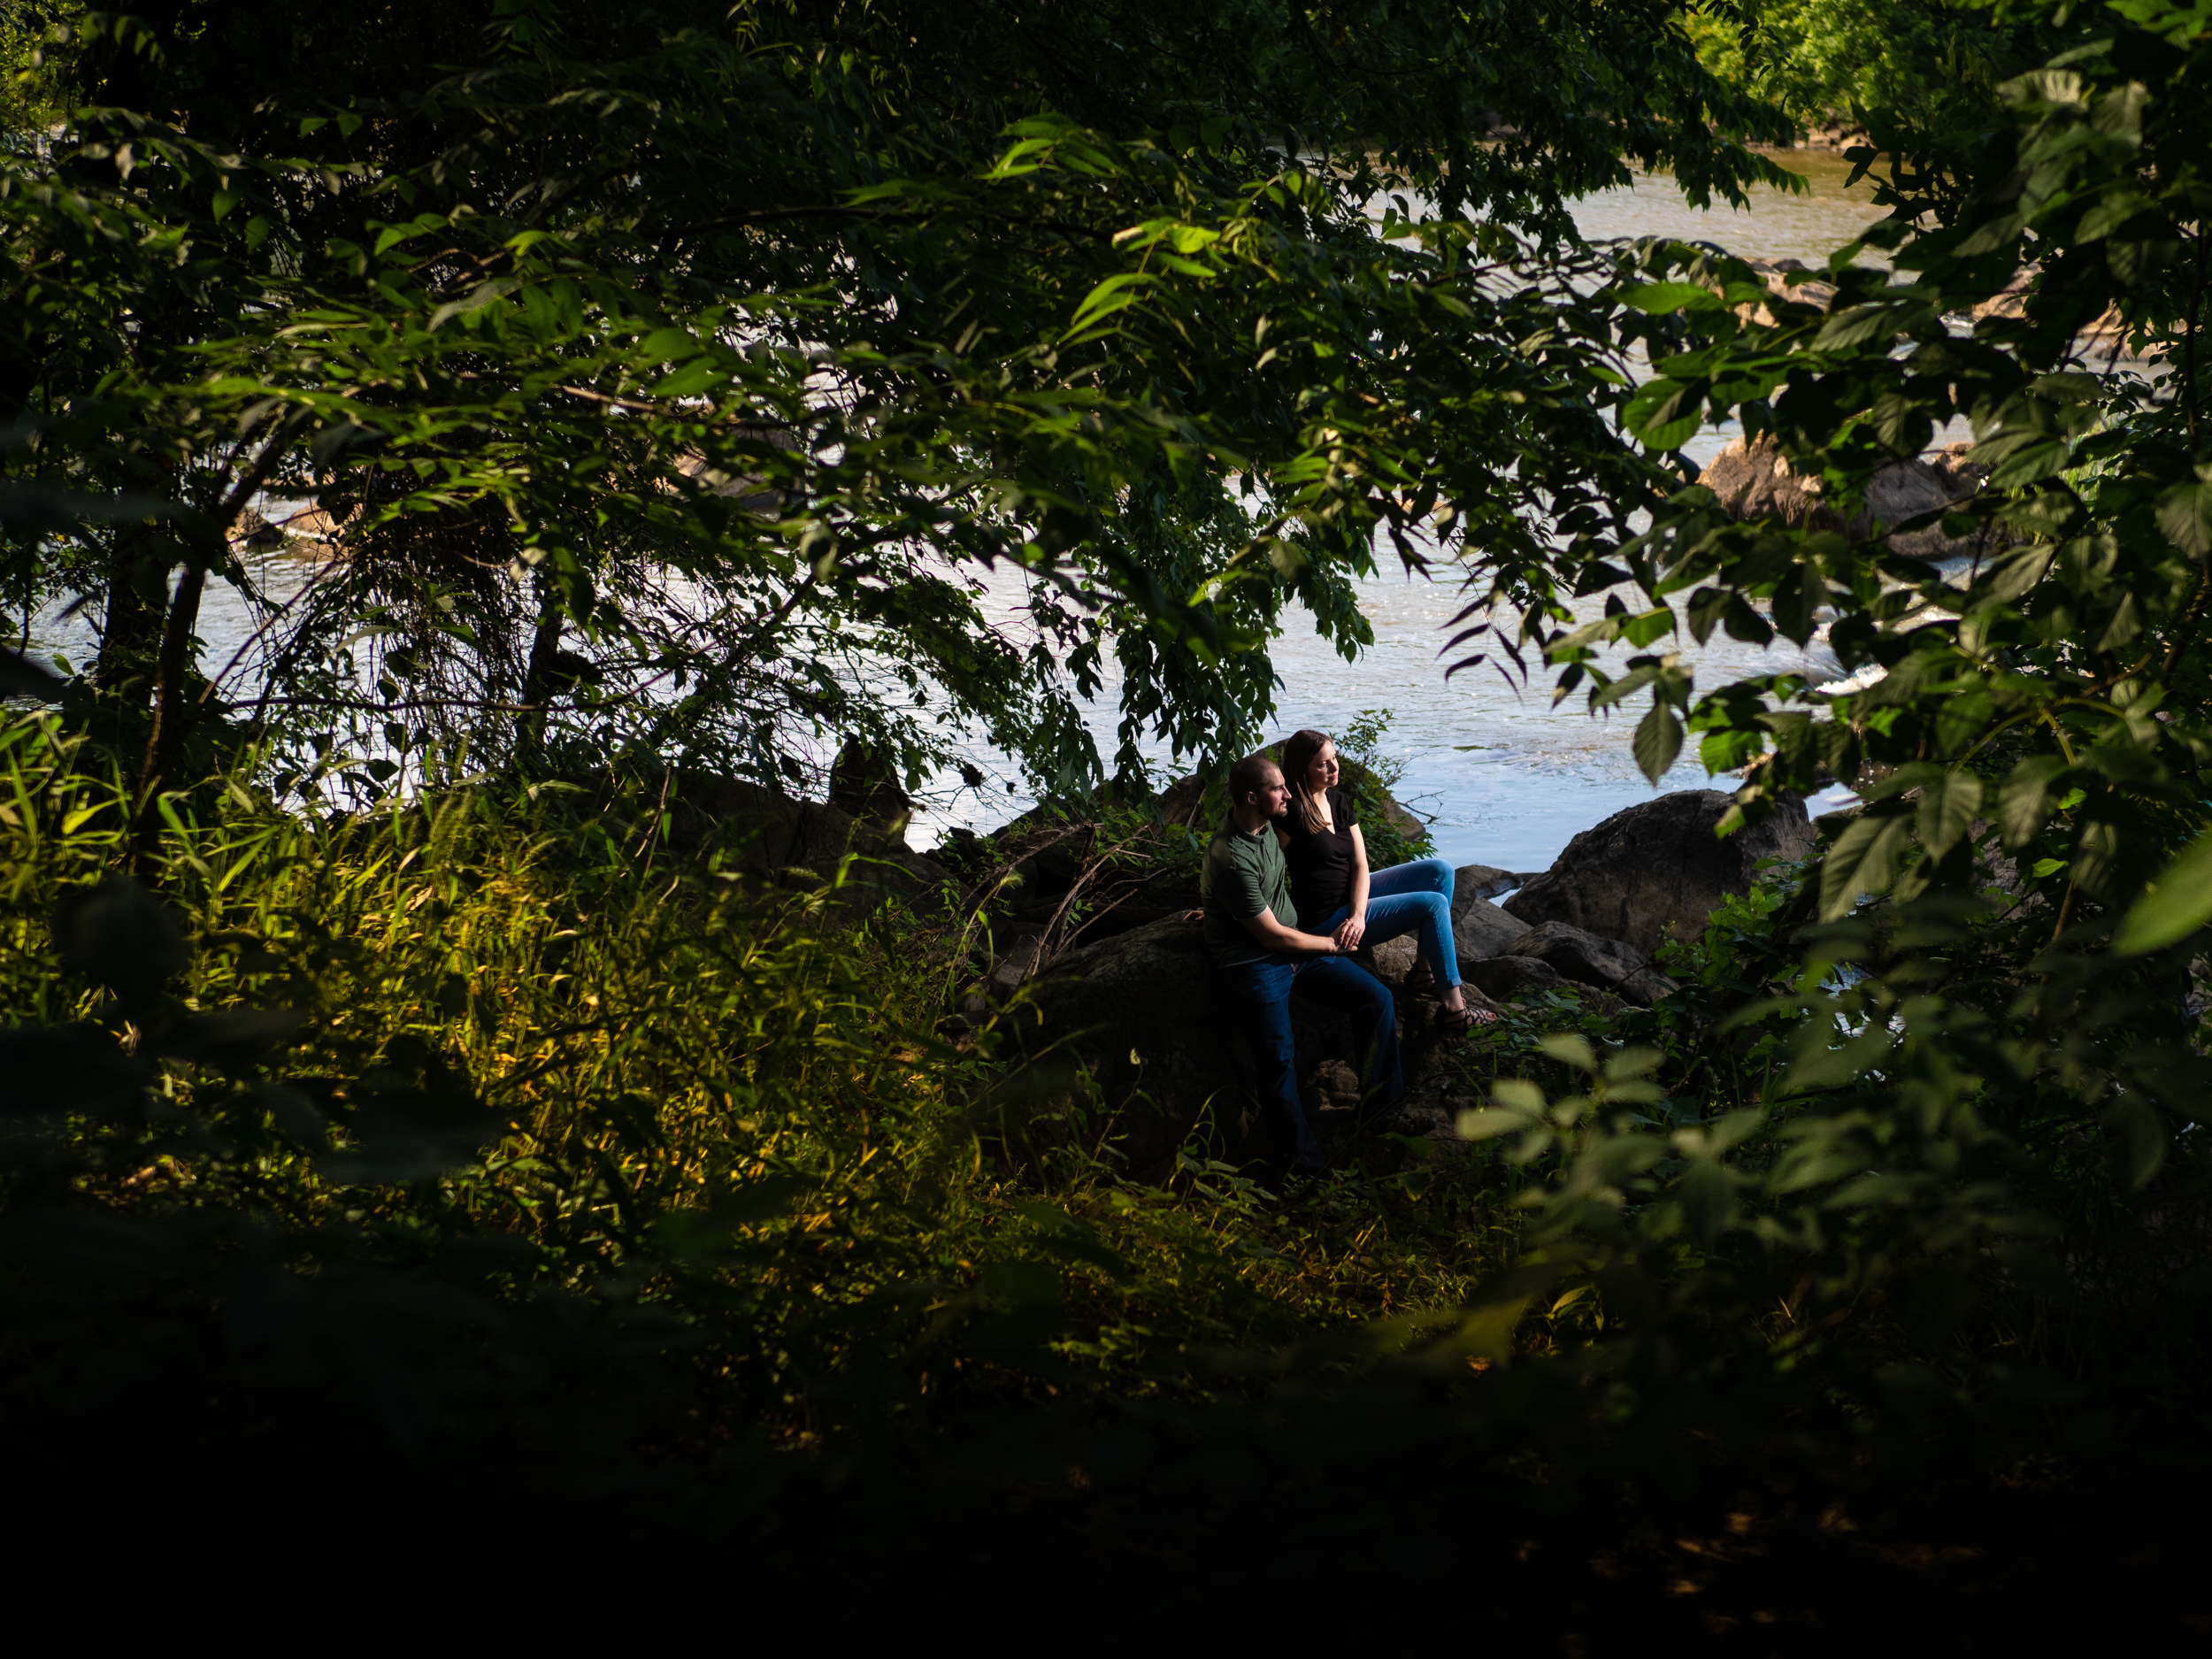 saxapahaw-brewery-river-chapel hill-carrboro-engagement-portraits-wedding-emily-brad-30216.jpg